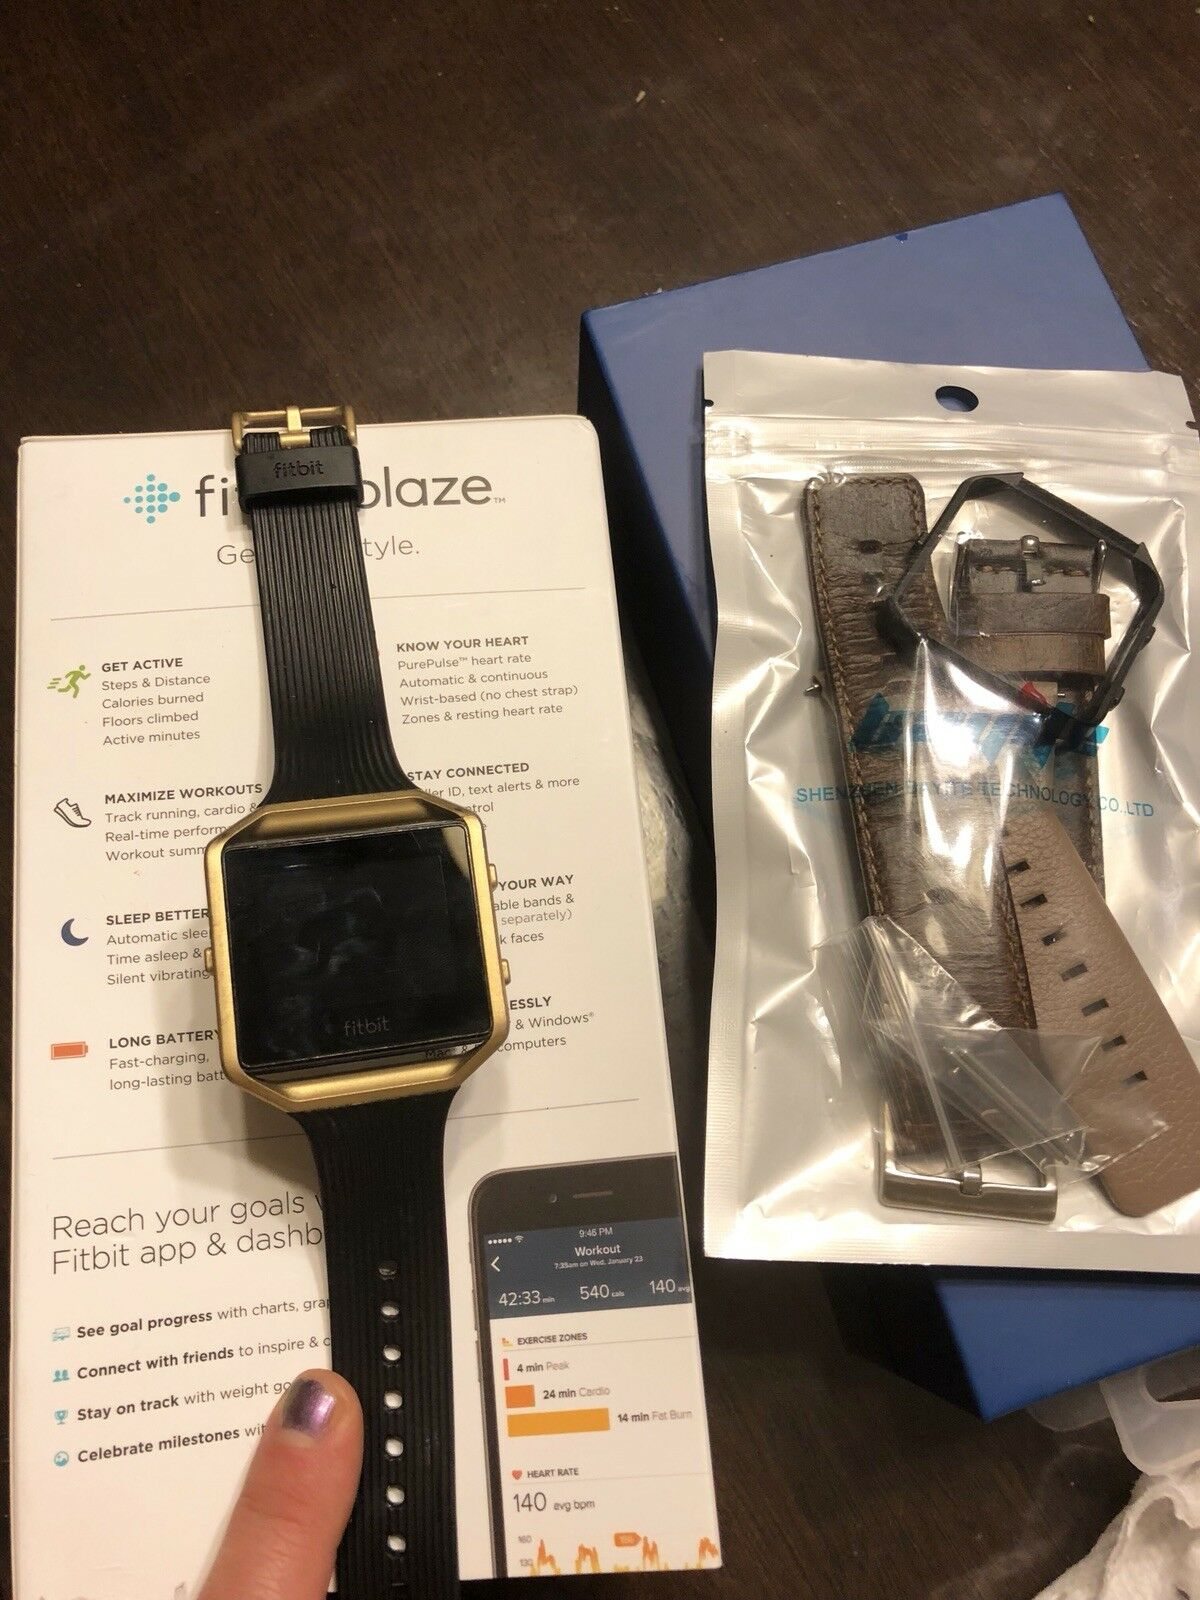 Fitbit Blaze Smart Fitness Watch Small Size + Extra Band.